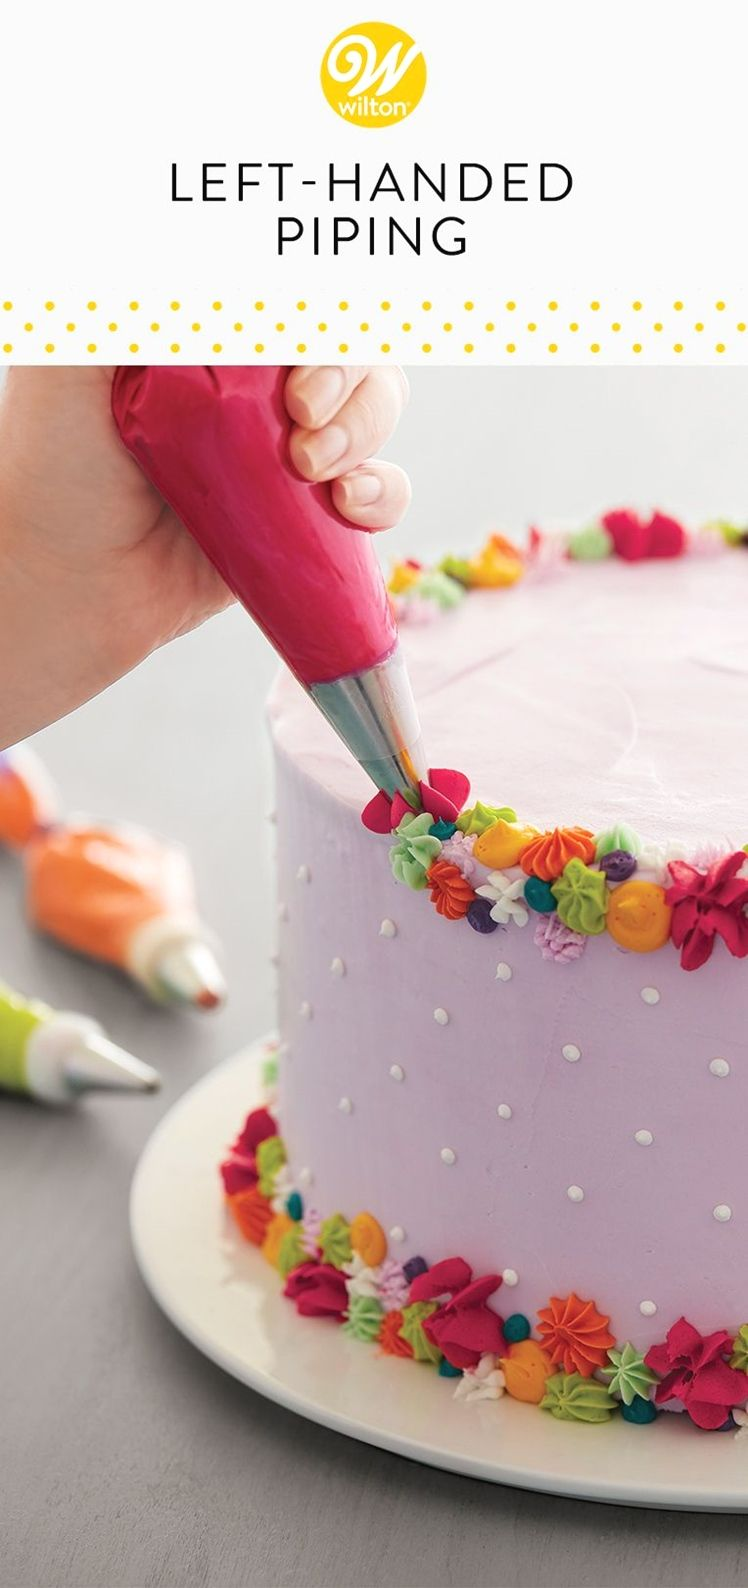 Cake Decorating Ideas Cream Cheese Frosting Cakedecoratingfrosting Cake Decorating Cake Decorating Tips Cupcake Cakes